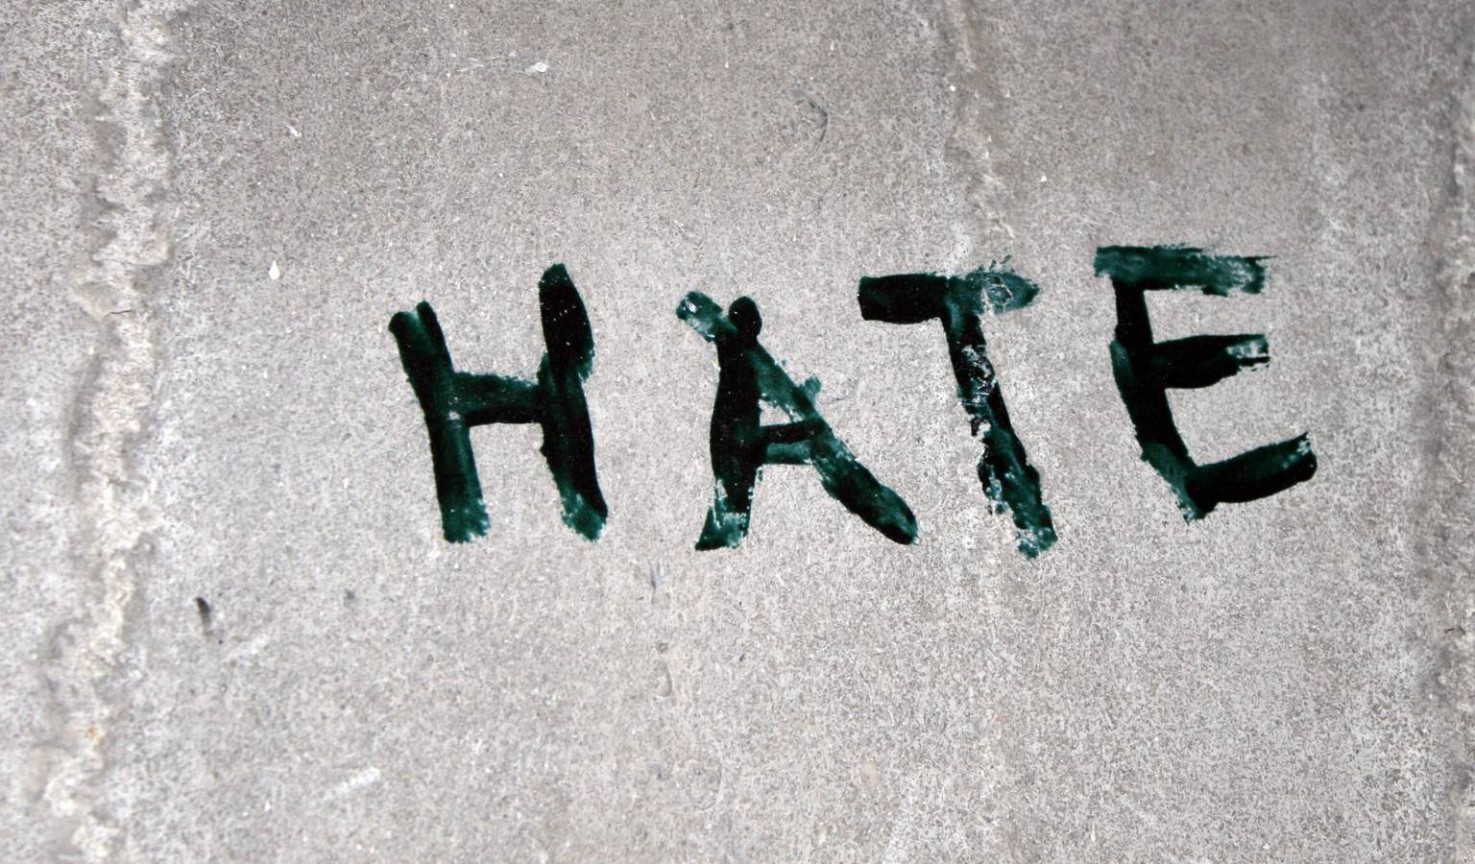 psychology of hate The psychology of pure hate a behavioral analyst for the fbi provides some insight in an article about the psychopathology of hate, dr jack schafer describes a seven-stage hate model for psychology today.